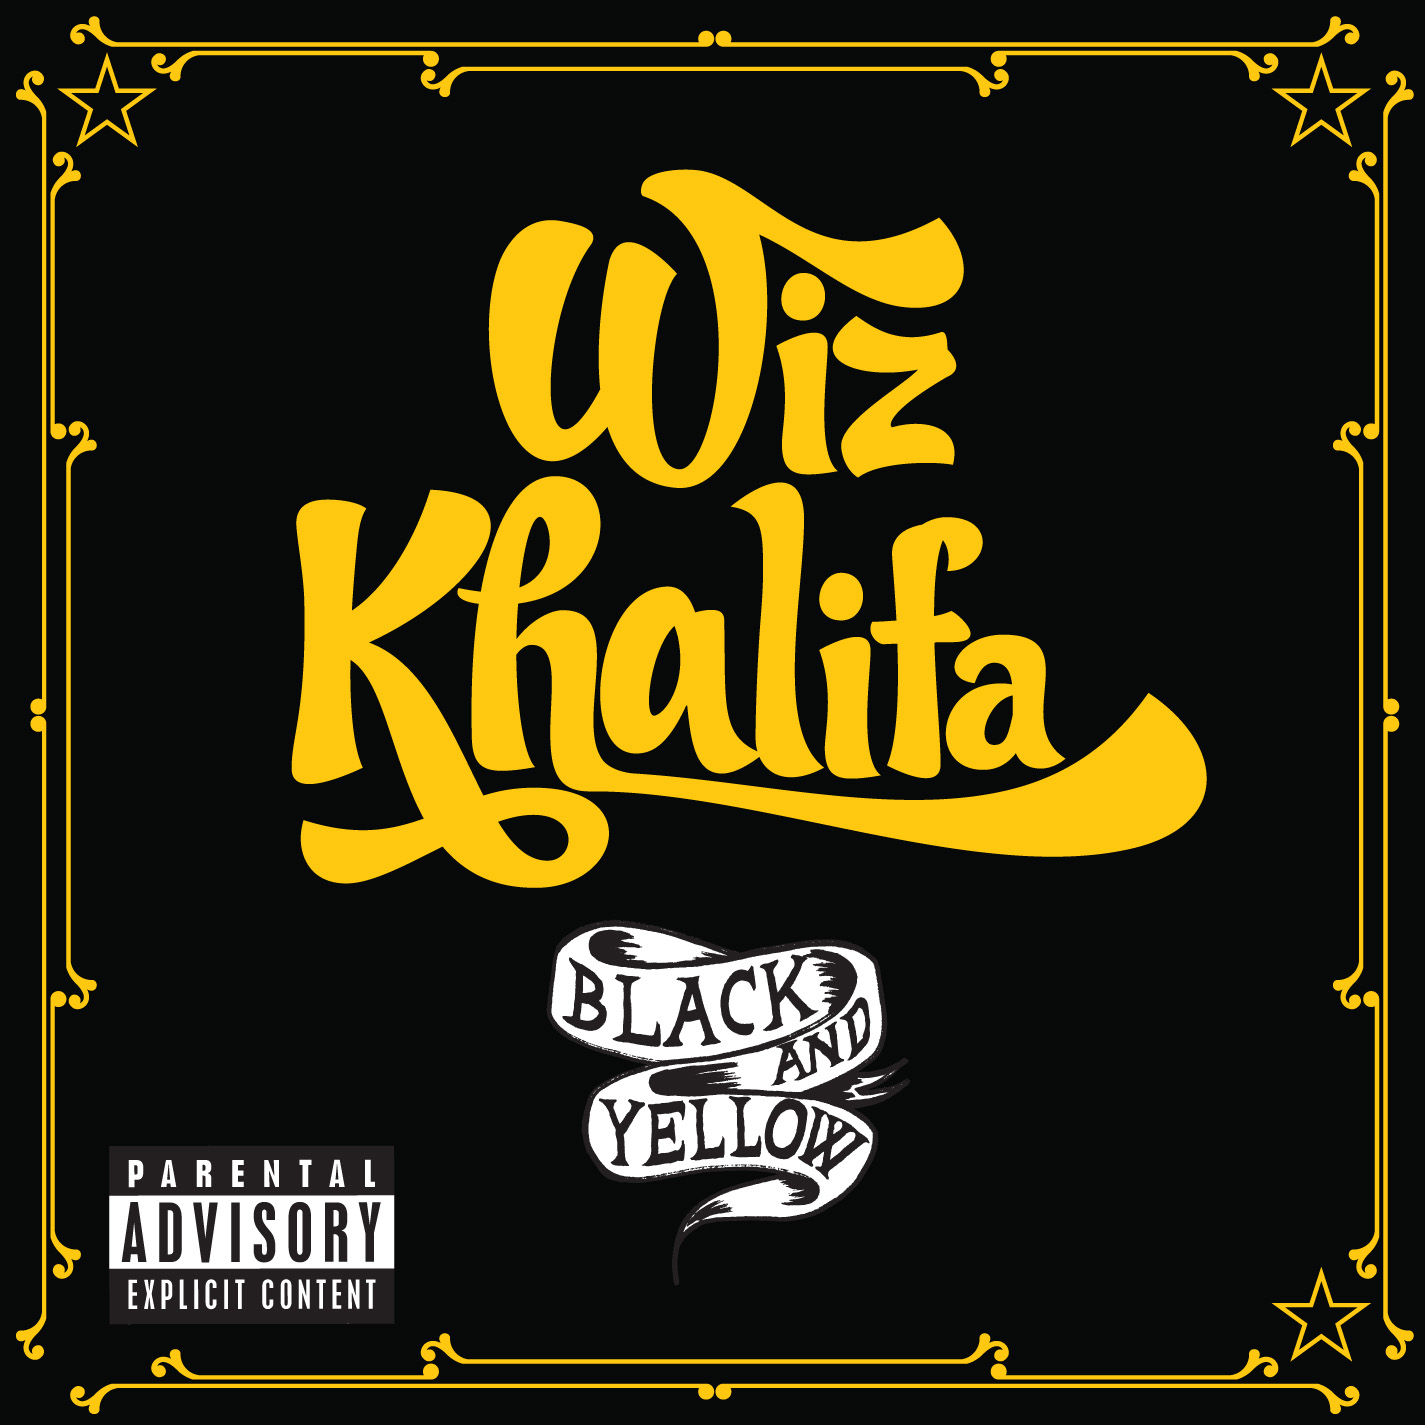 Book With Black And Yellow Cover ~ Wiz khalifa black and yellow